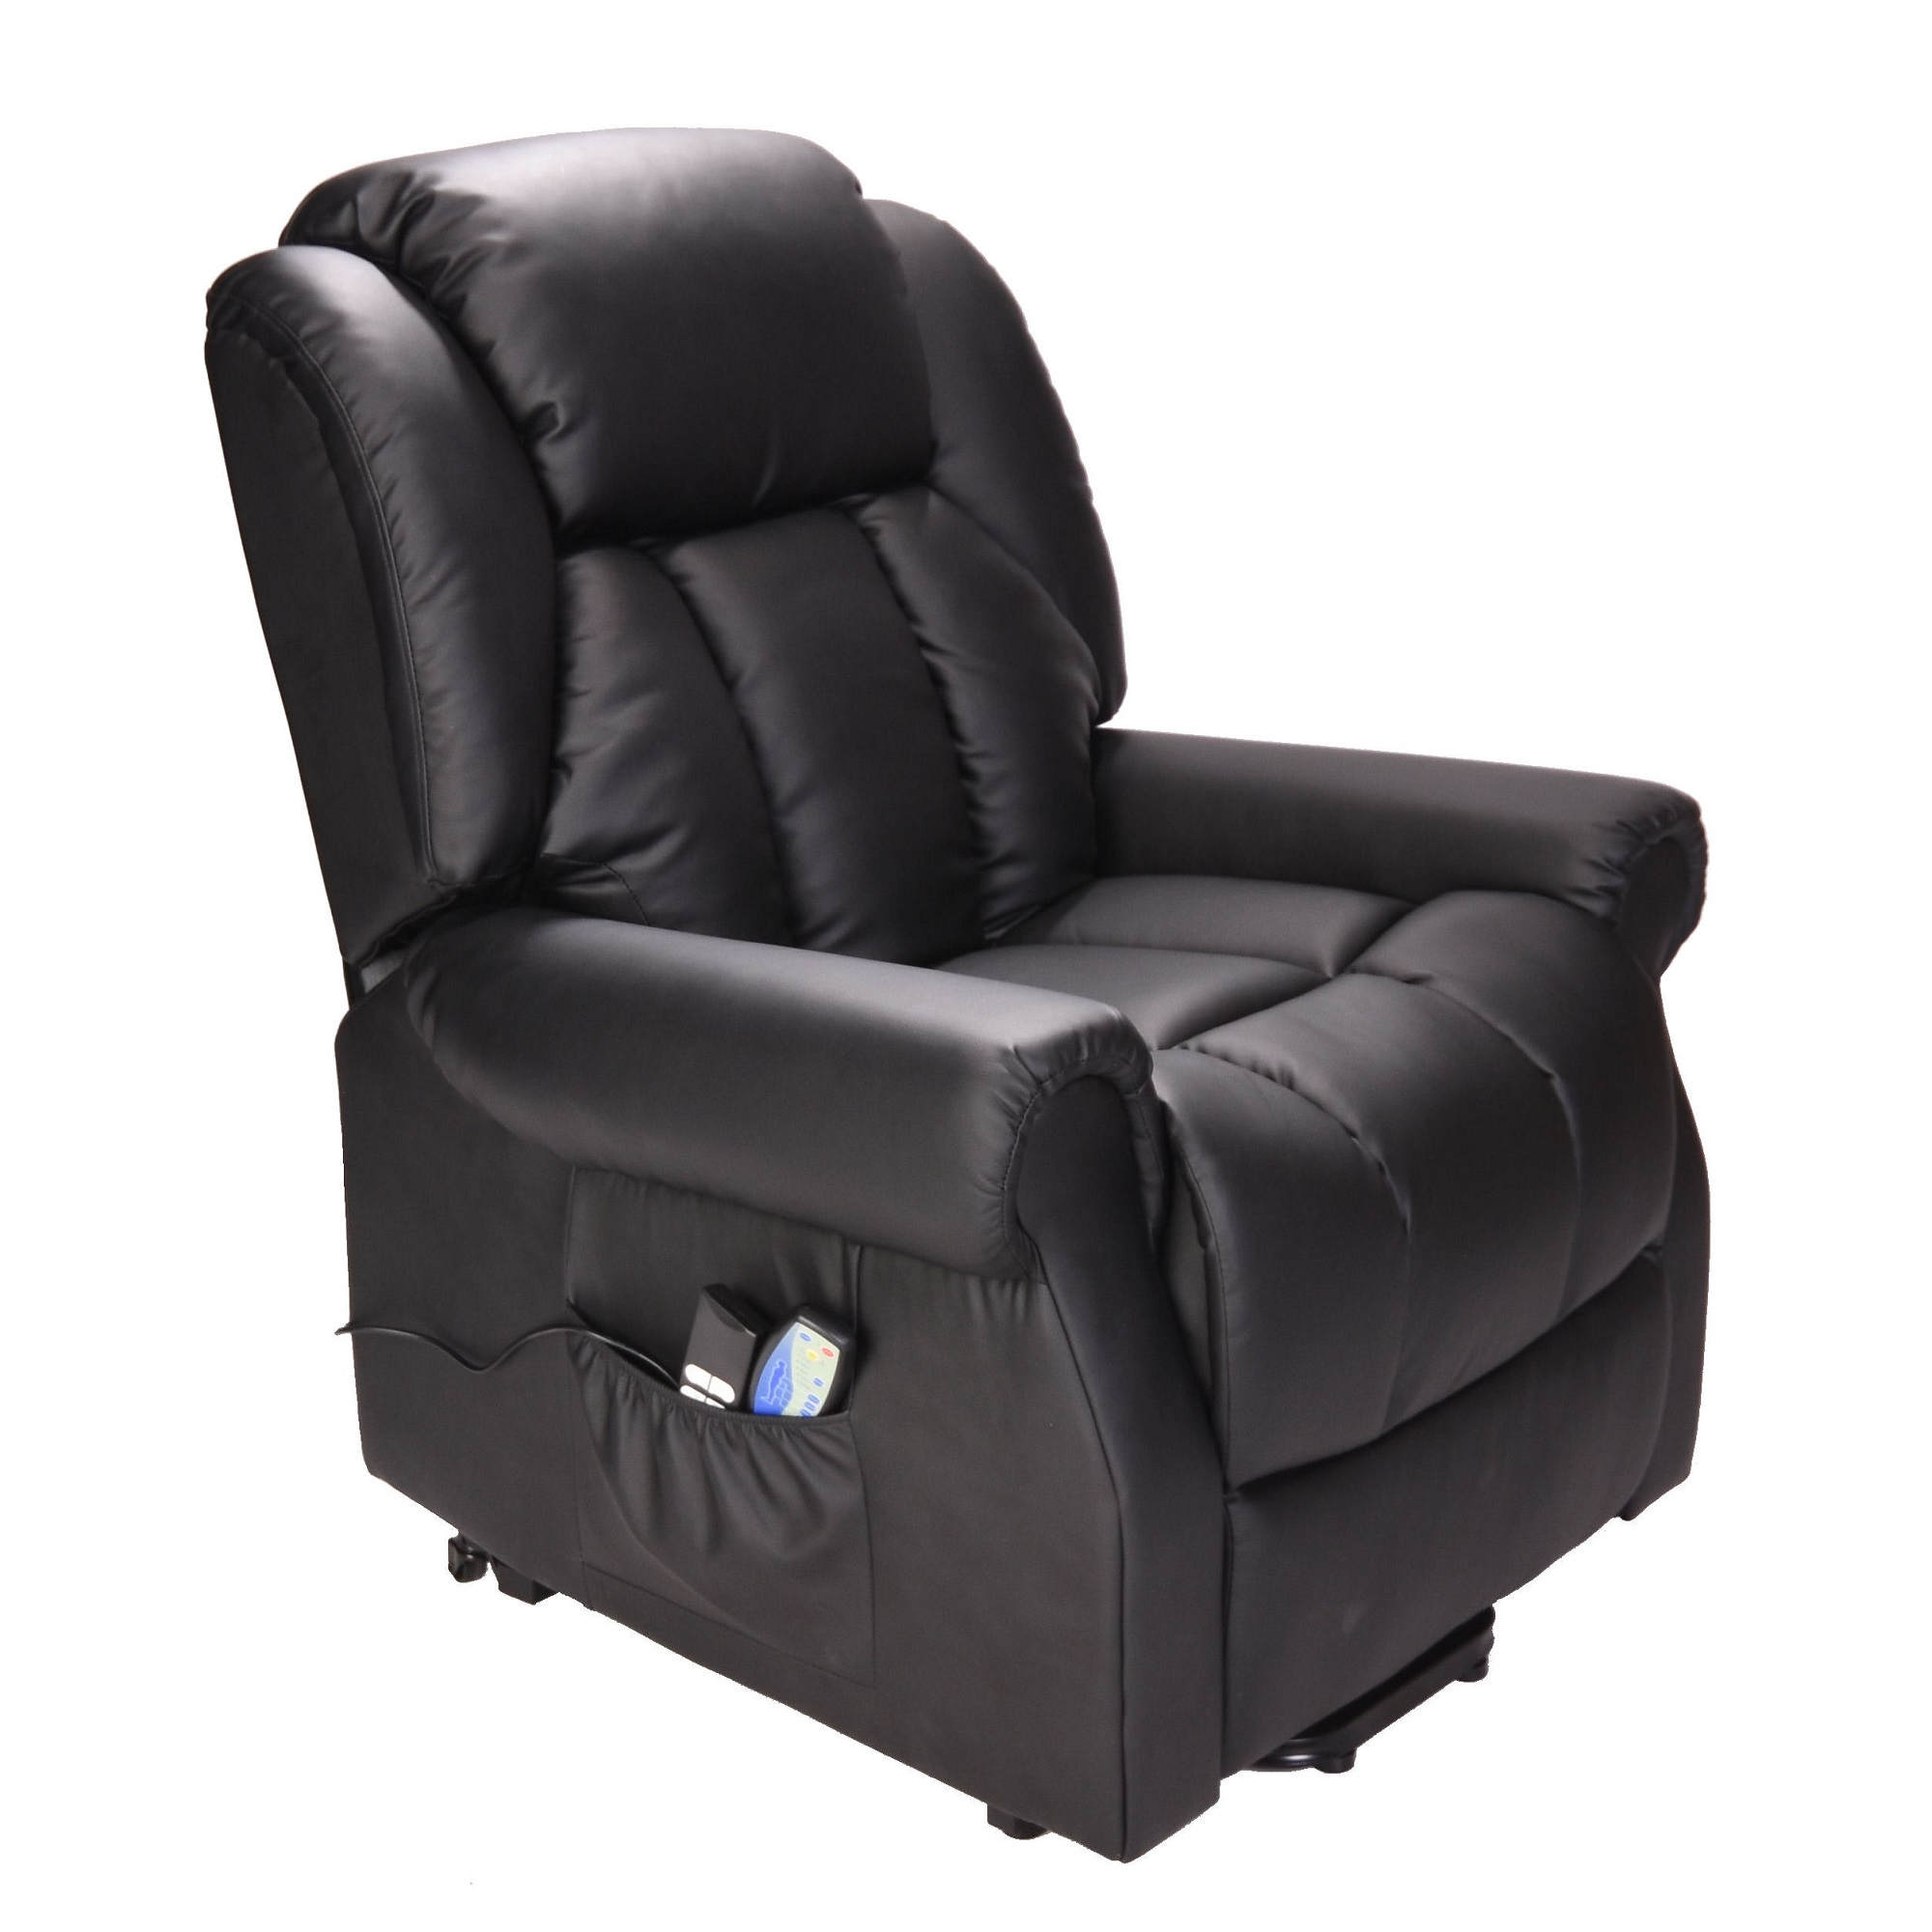 Great Hainworth Dual Motor Rise And Recliner Chair Black